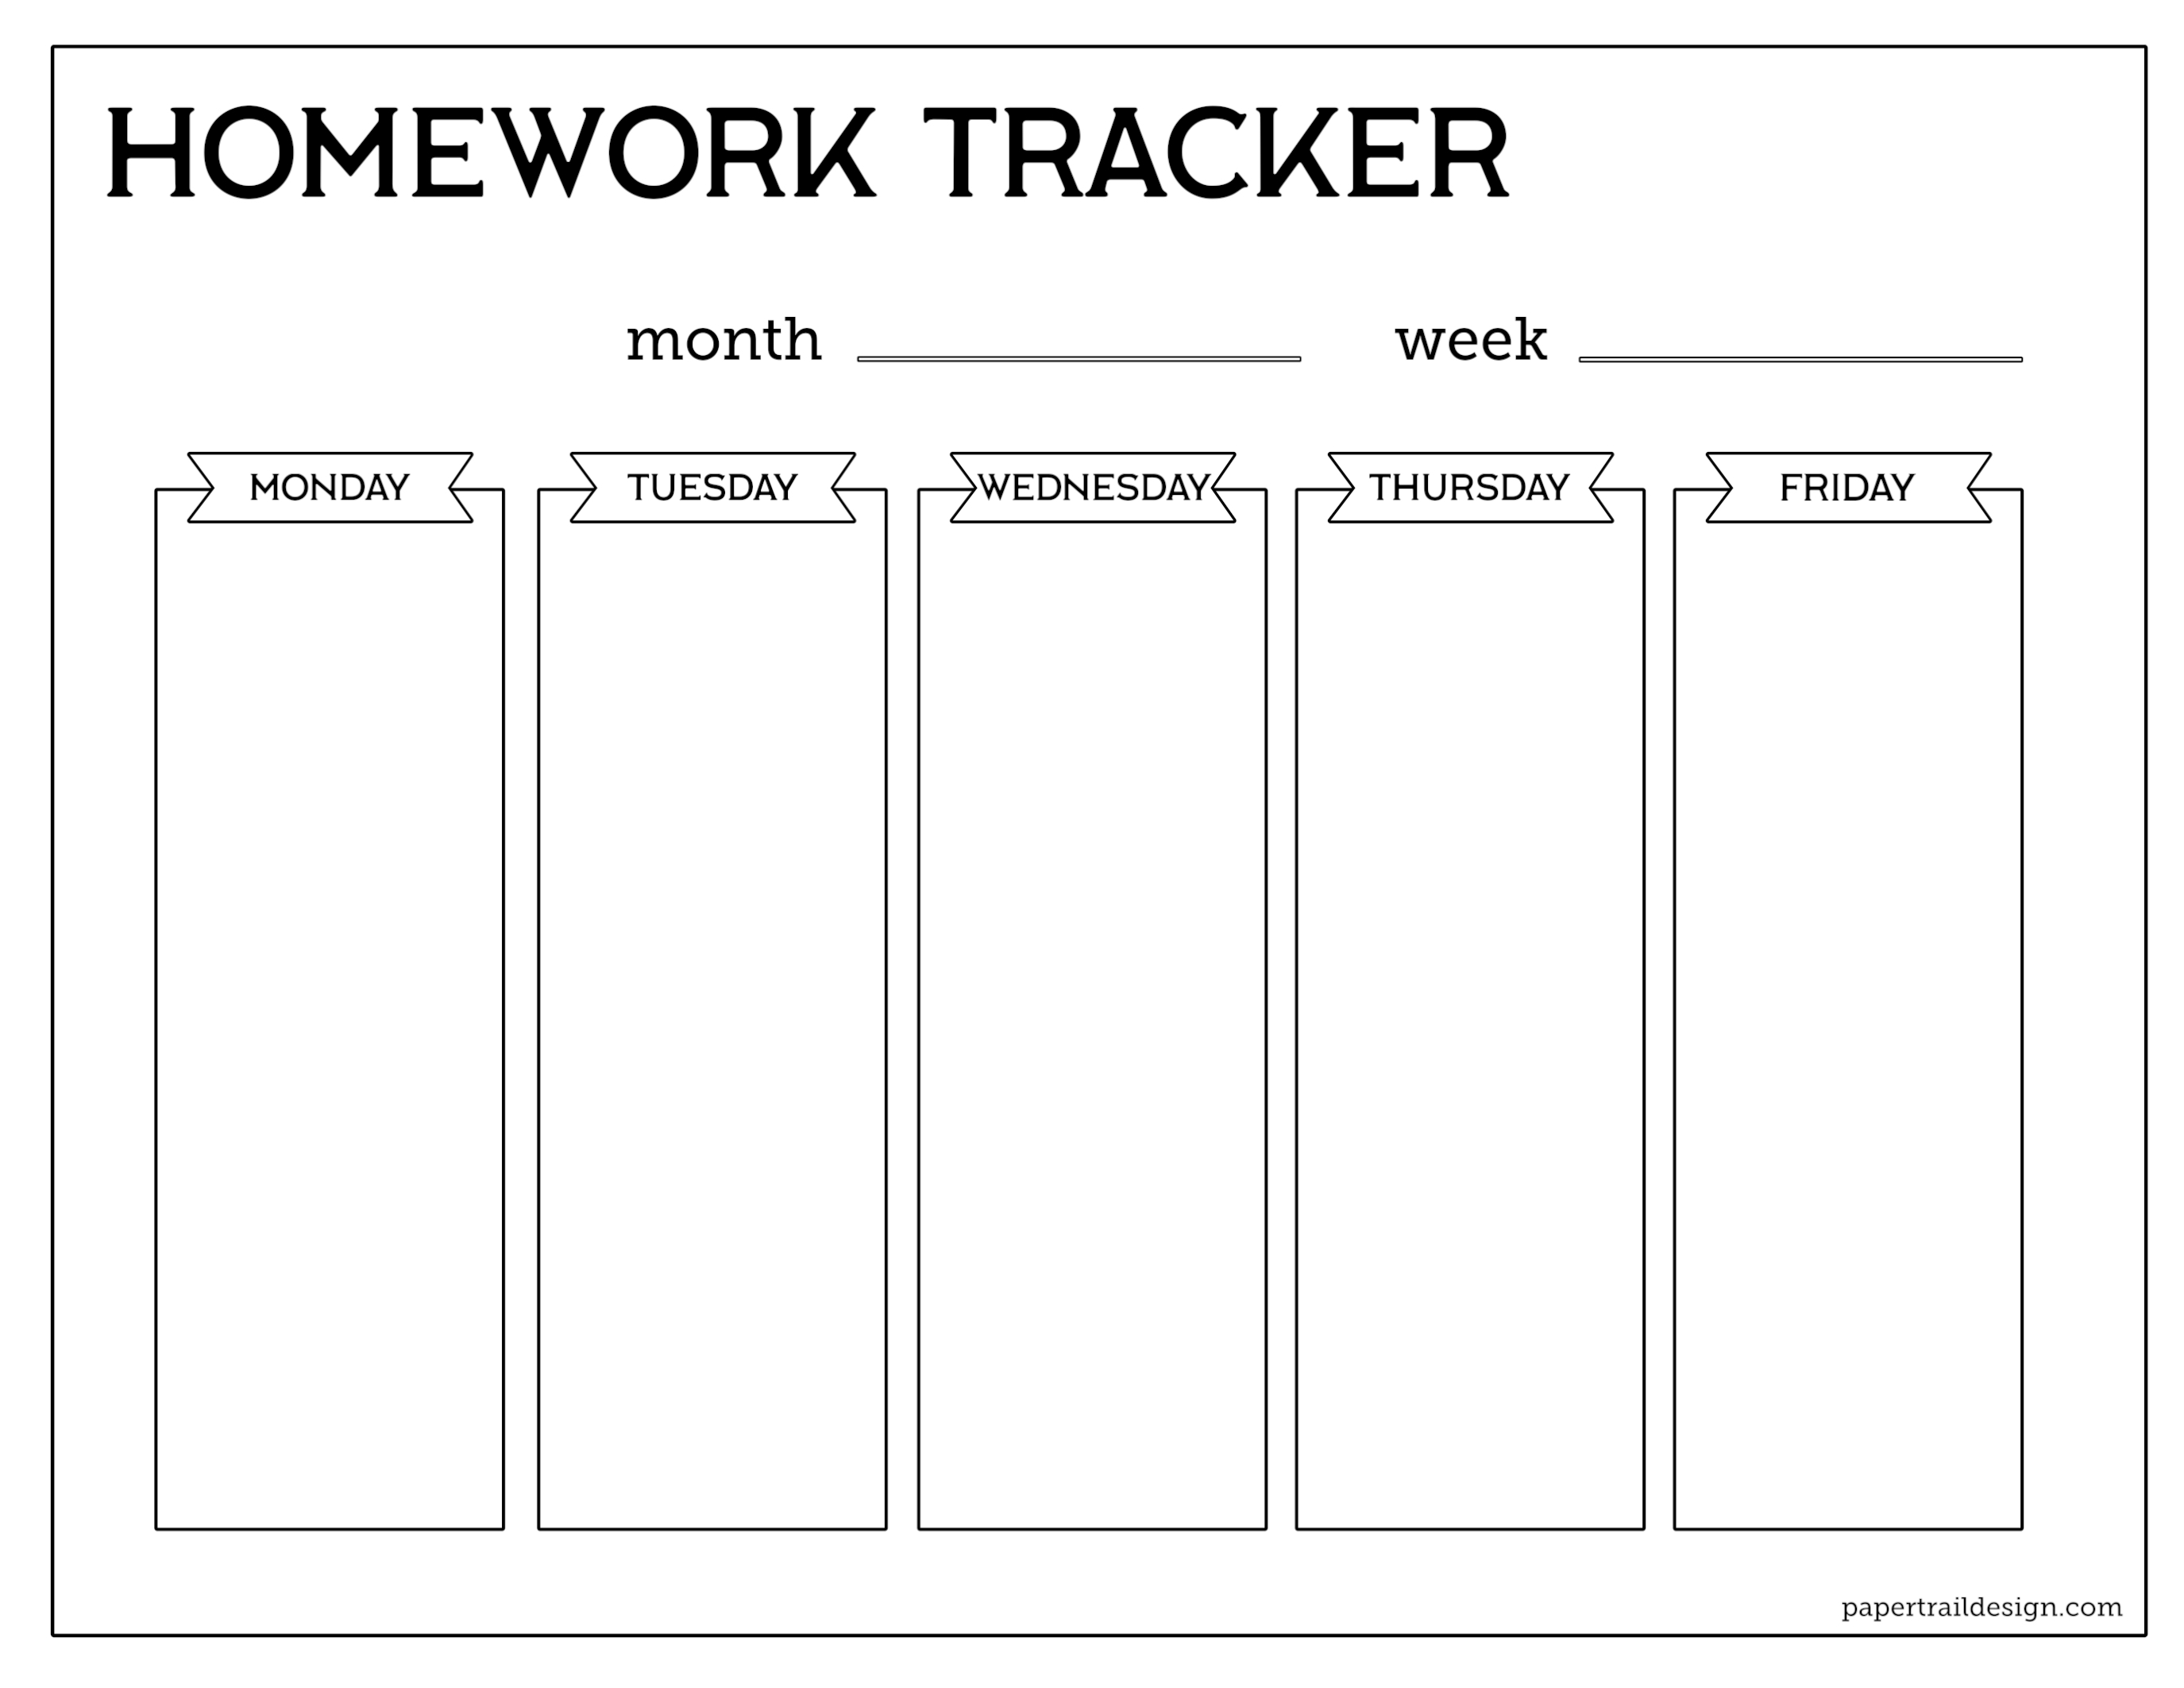 photograph relating to Printable Homework Planner referred to as Absolutely free Printable University student Research Planner Template - Paper